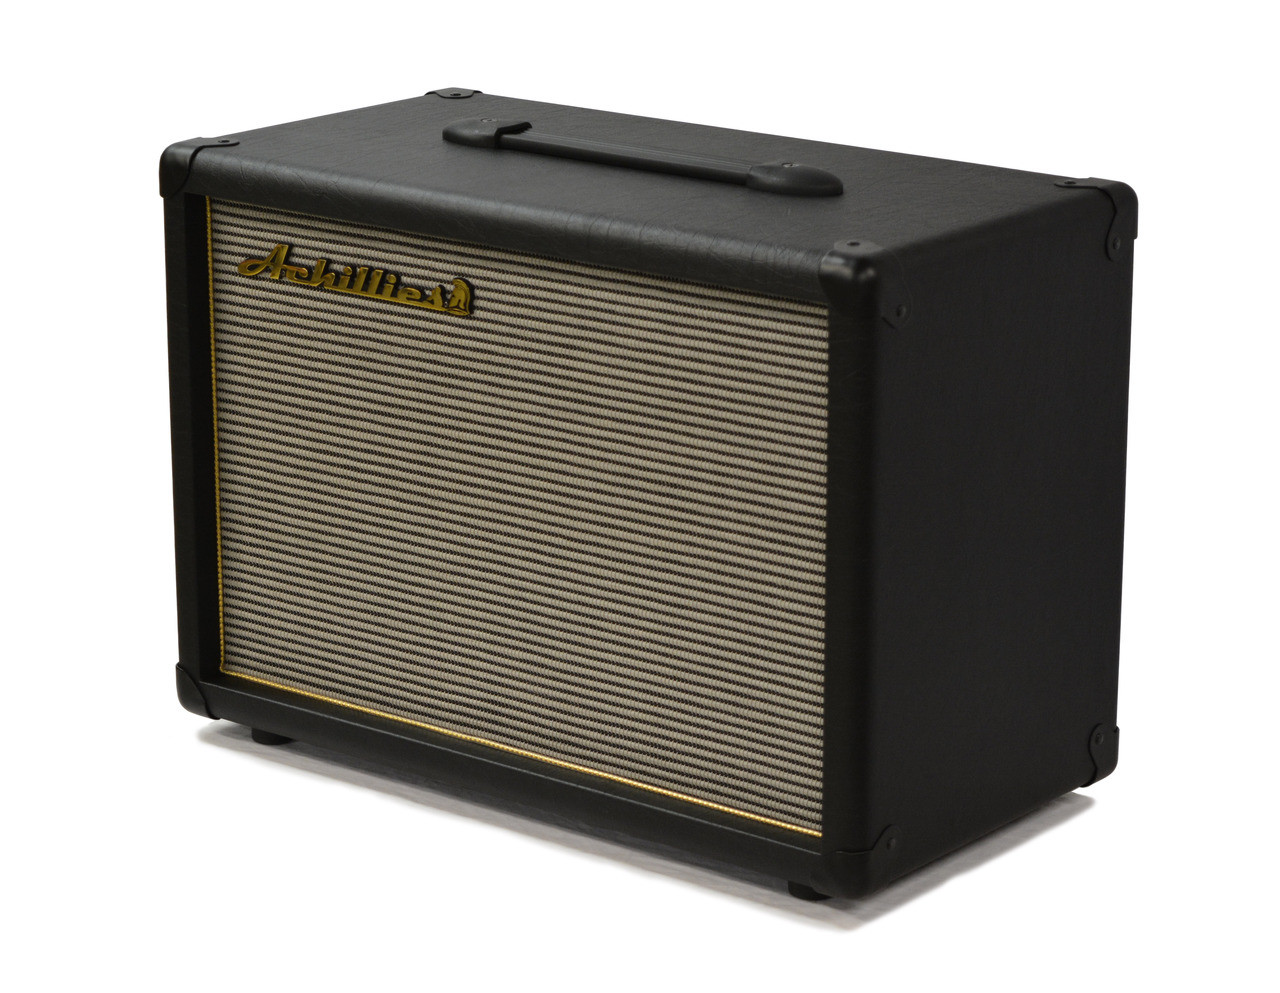 Creon 1x10 - Achillies Amplification